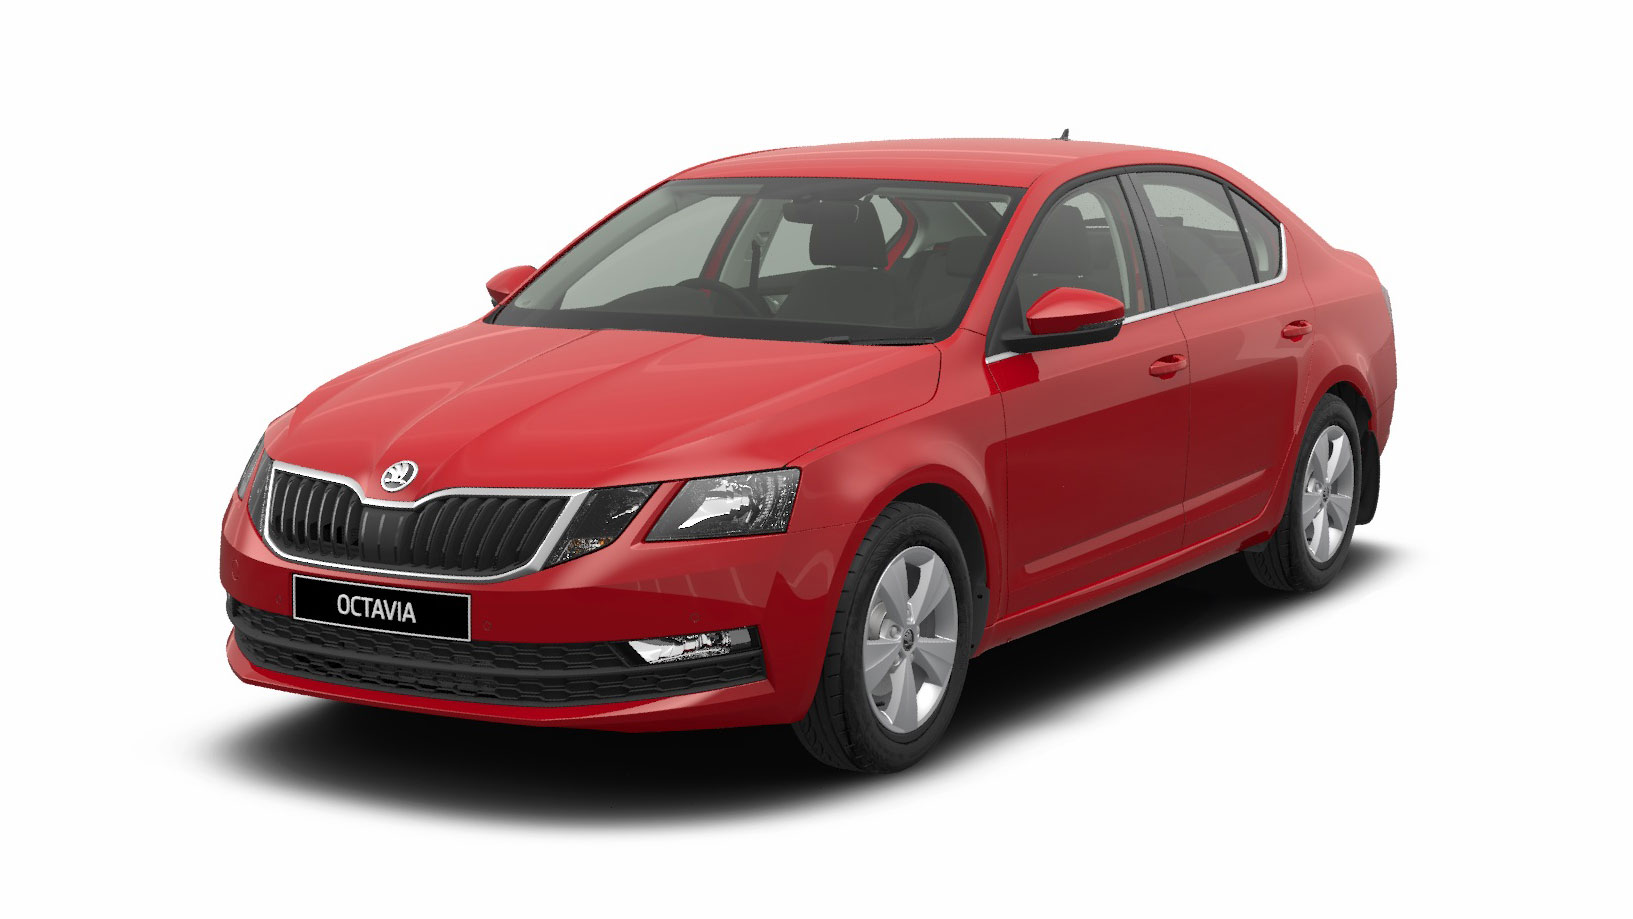 Octavia SE Tech 1.6 TDI Hatch